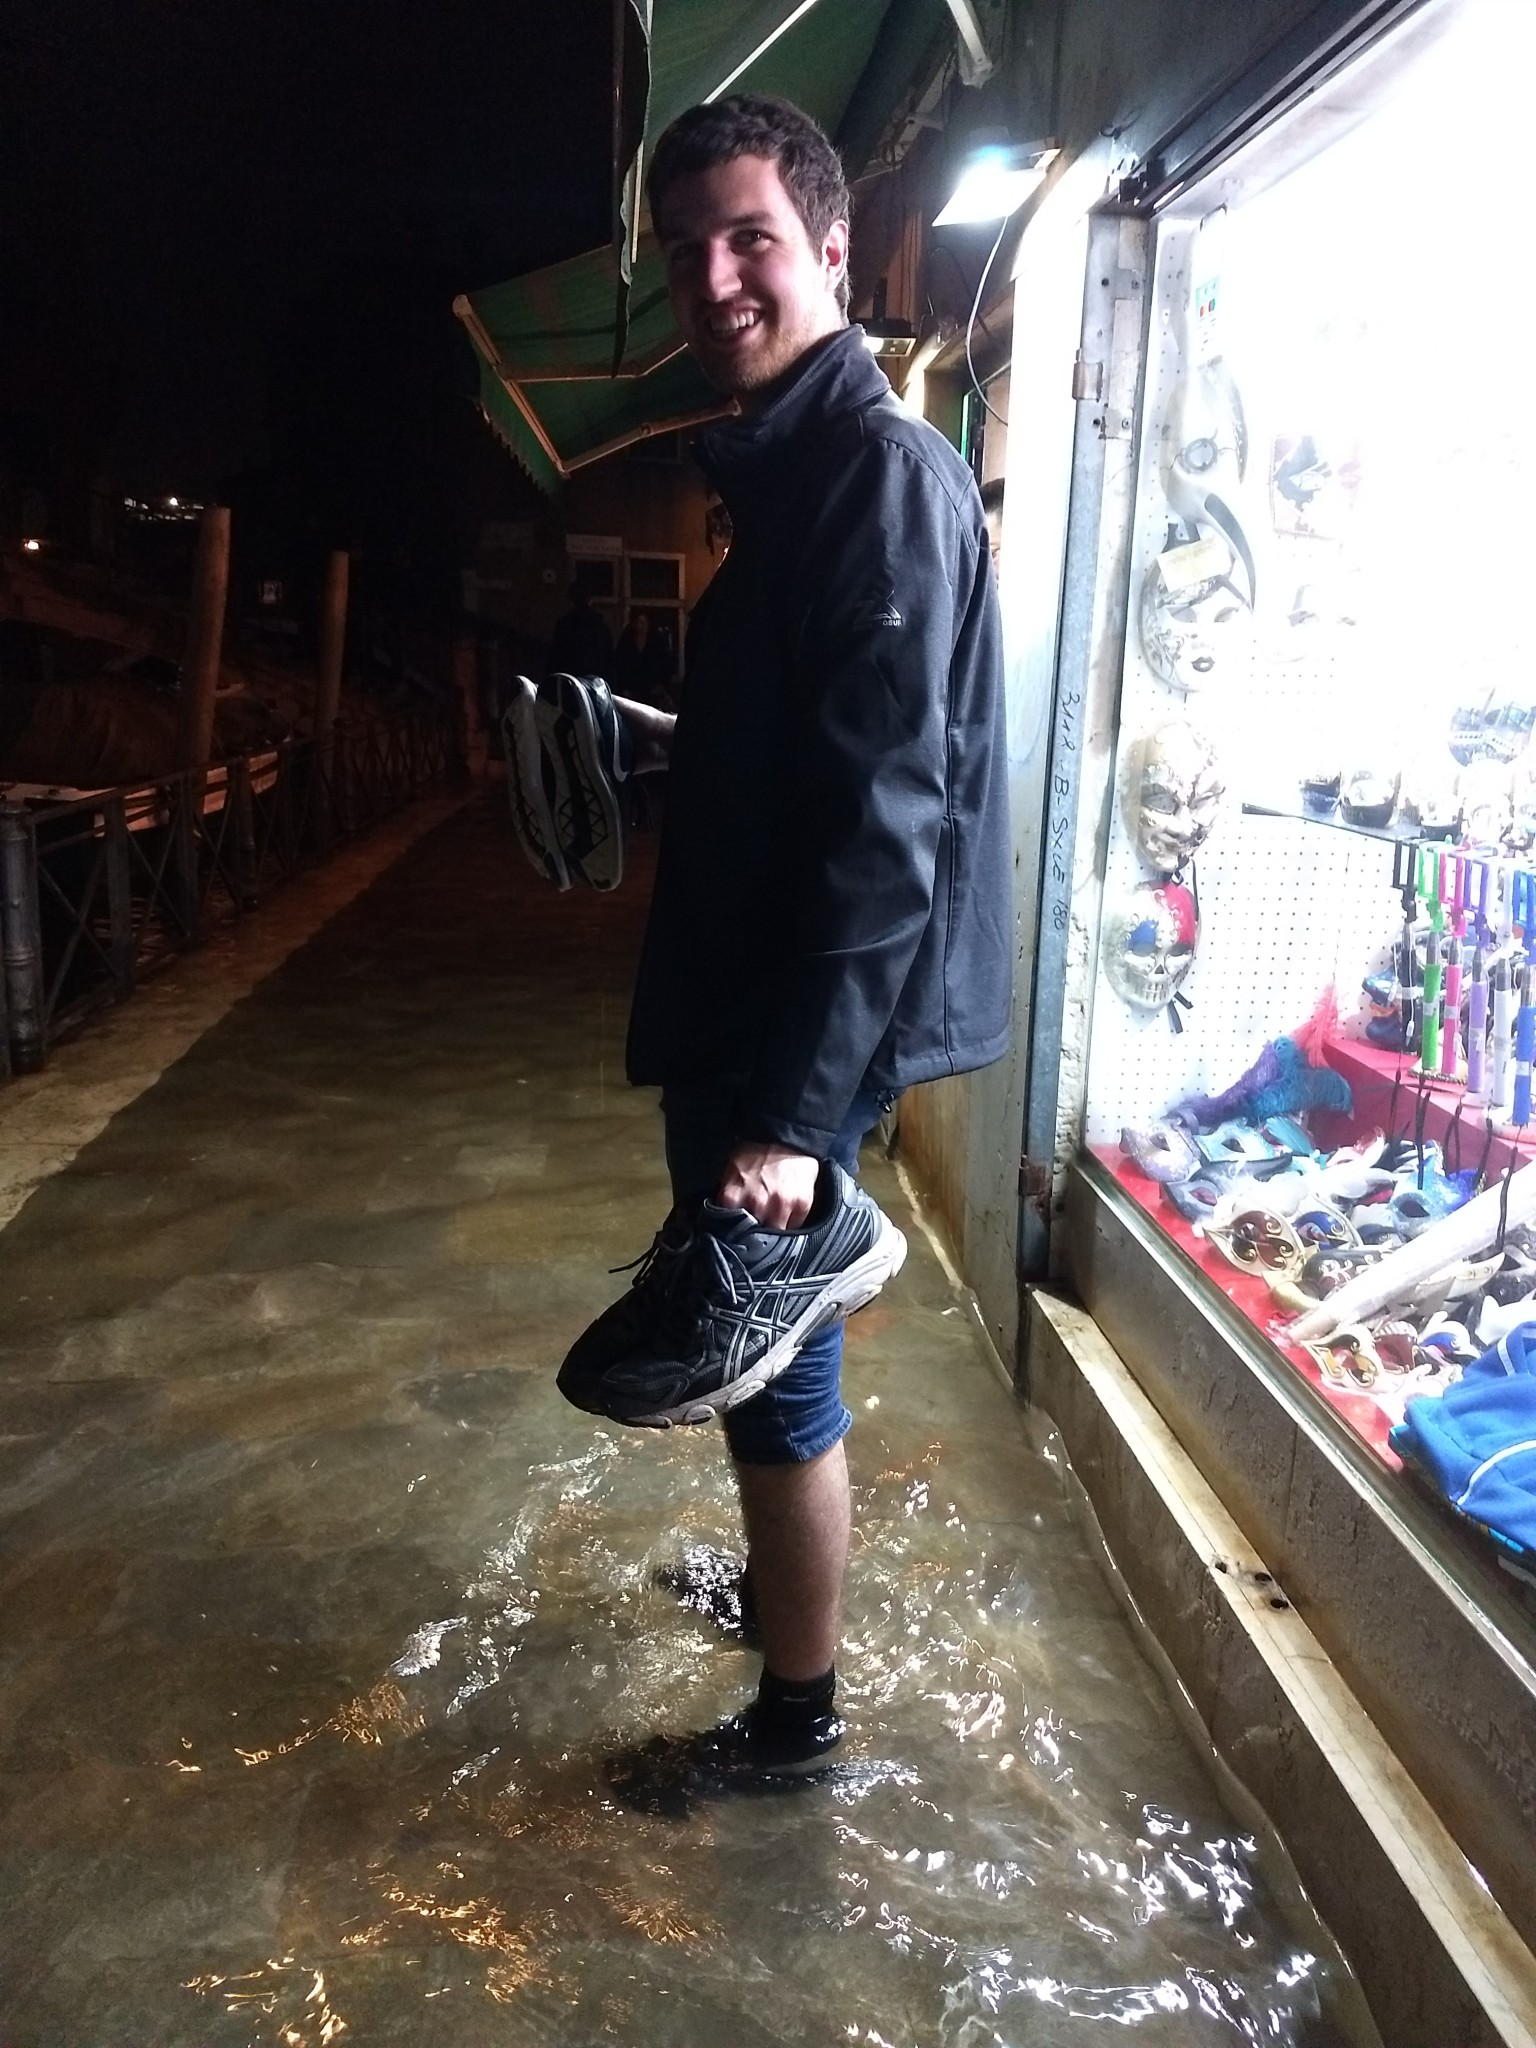 Caught in acqua alto (high tide), the author's fiance, Tyler, carries their shoes as they navigated several inches of flood water from the canals to their hotel. (Photo by Katie Siebenaller)